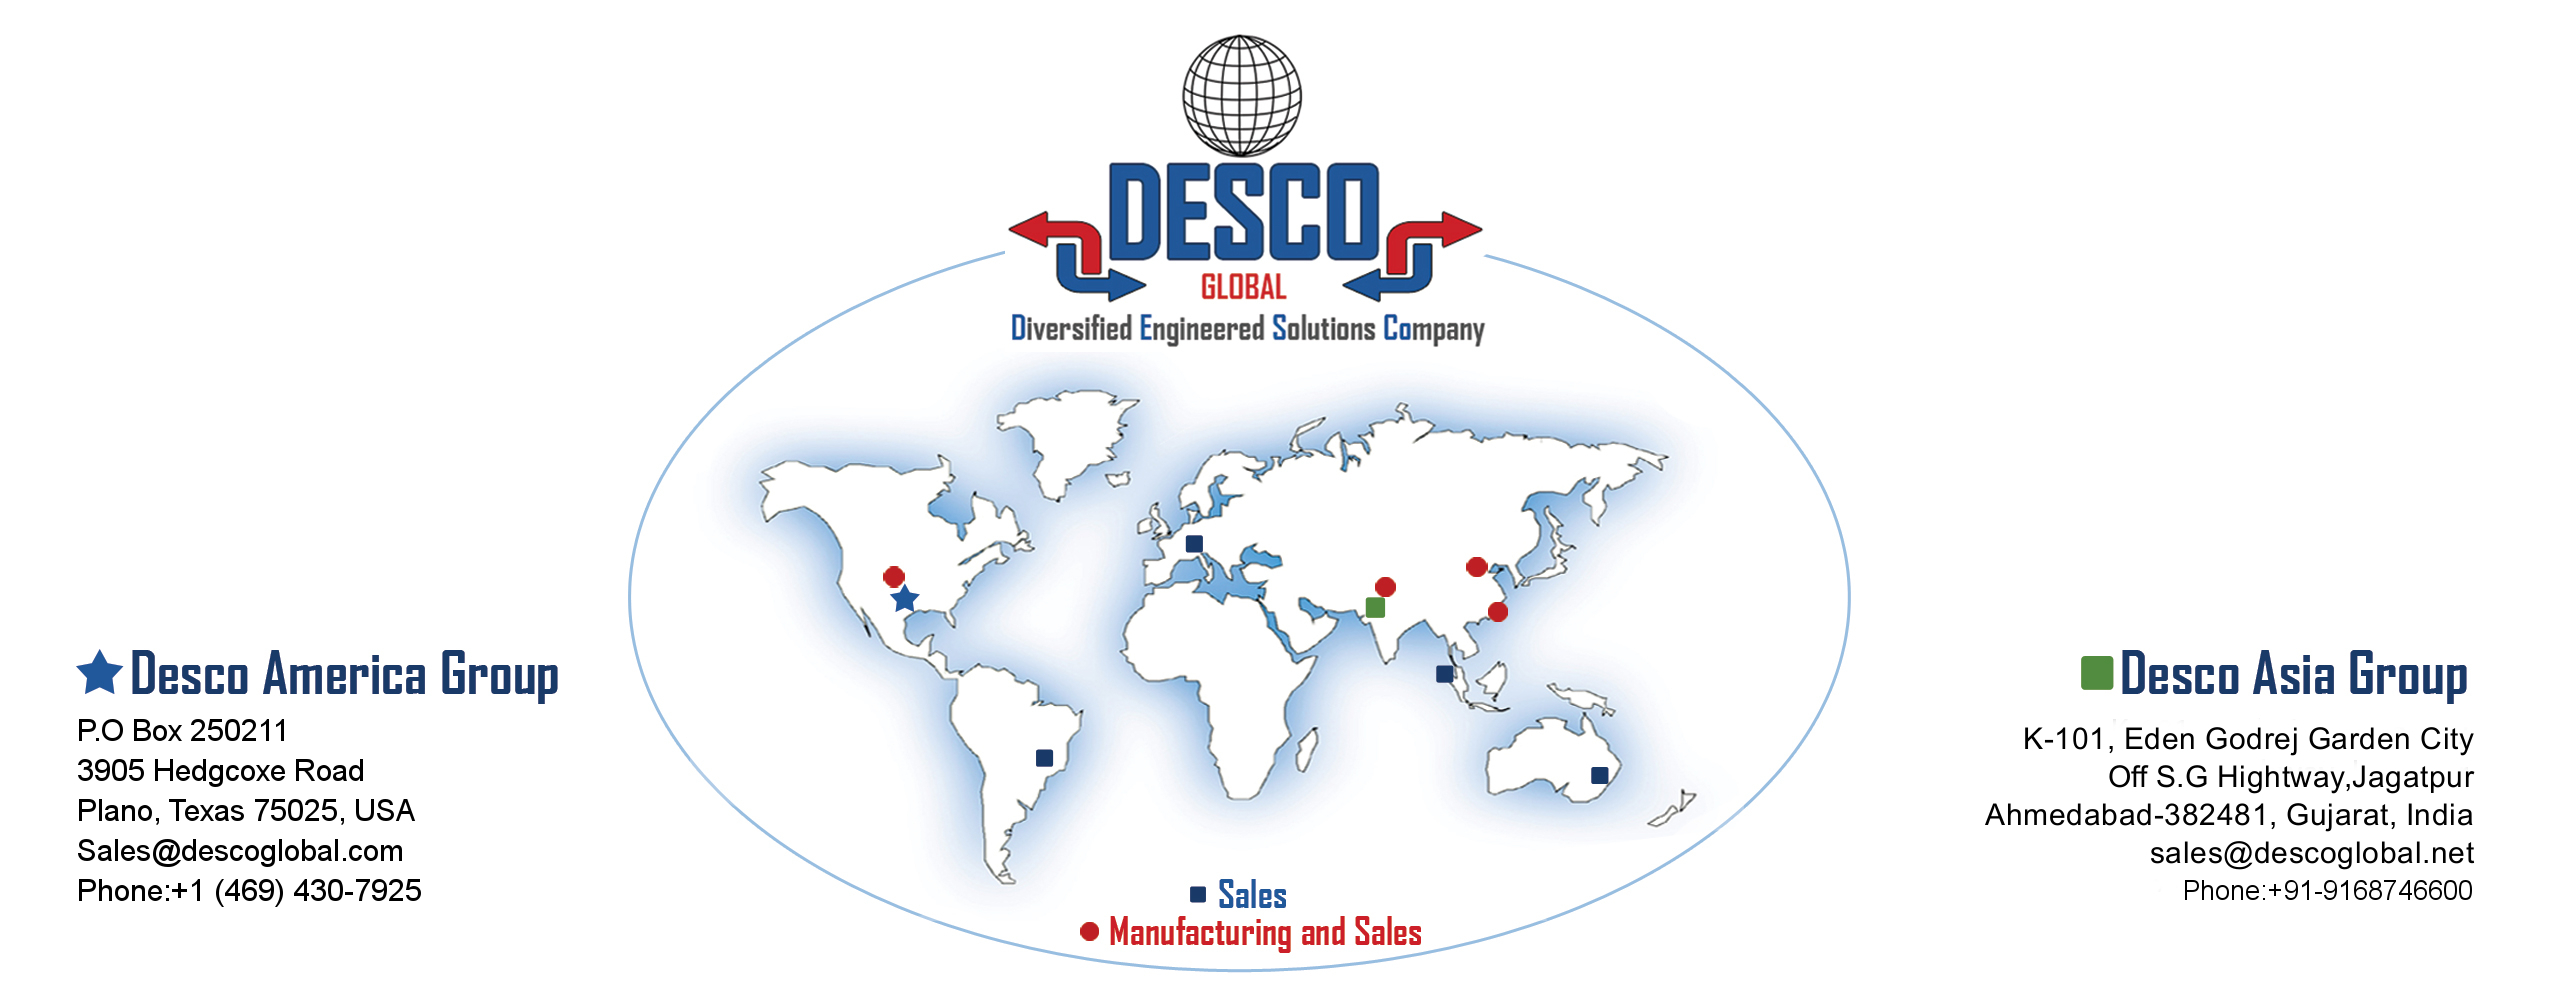 desco global